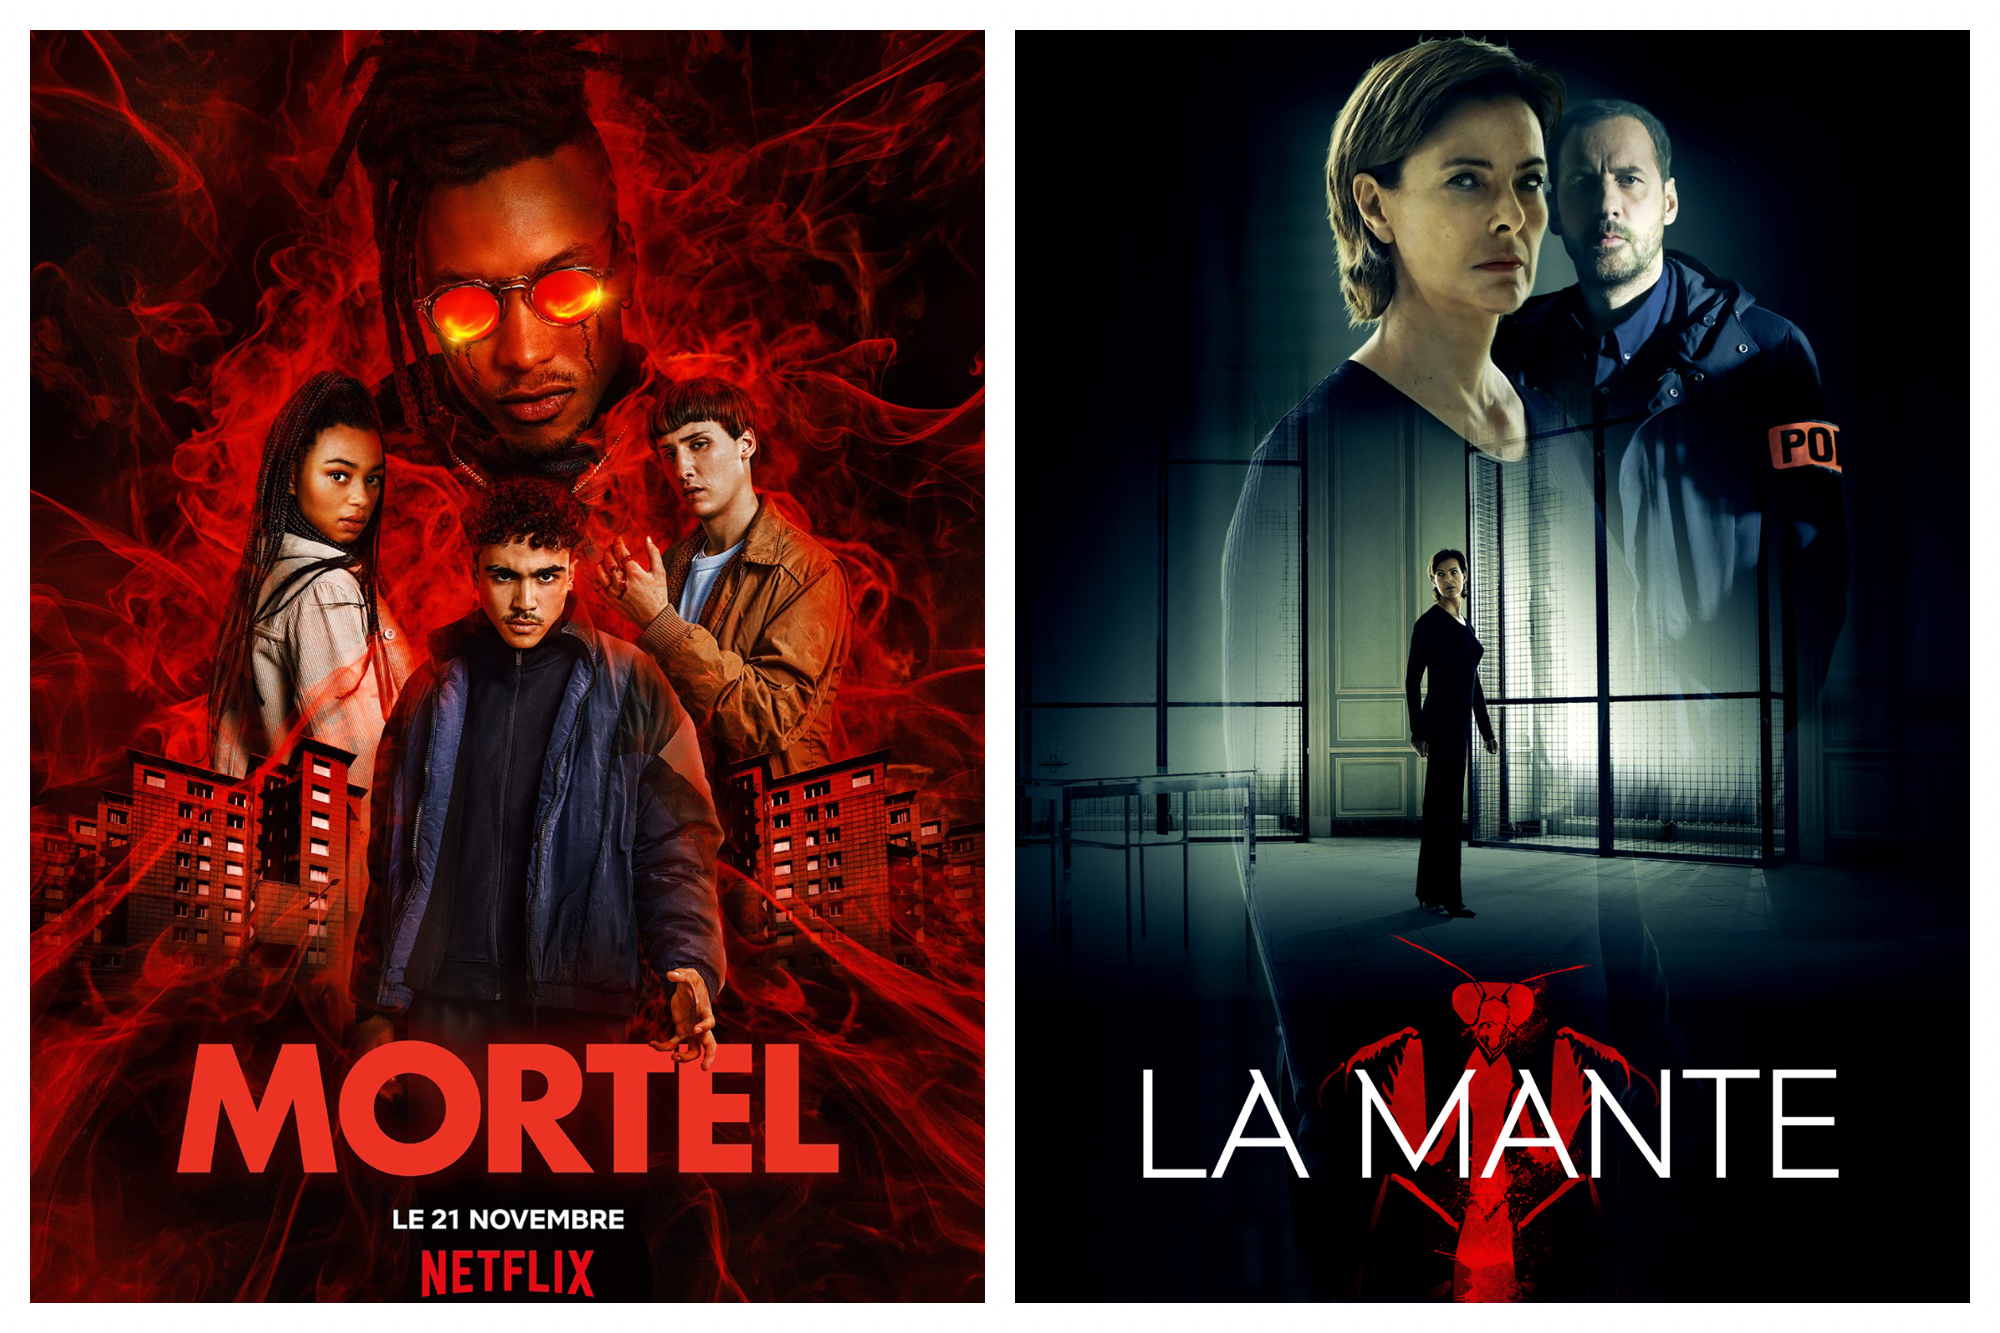 Left, the poster for Mortel, a new French Netflix series with young people fighting for a cause in  the city. Right, the poster for La Mante series, with the main characters in a high-rise.